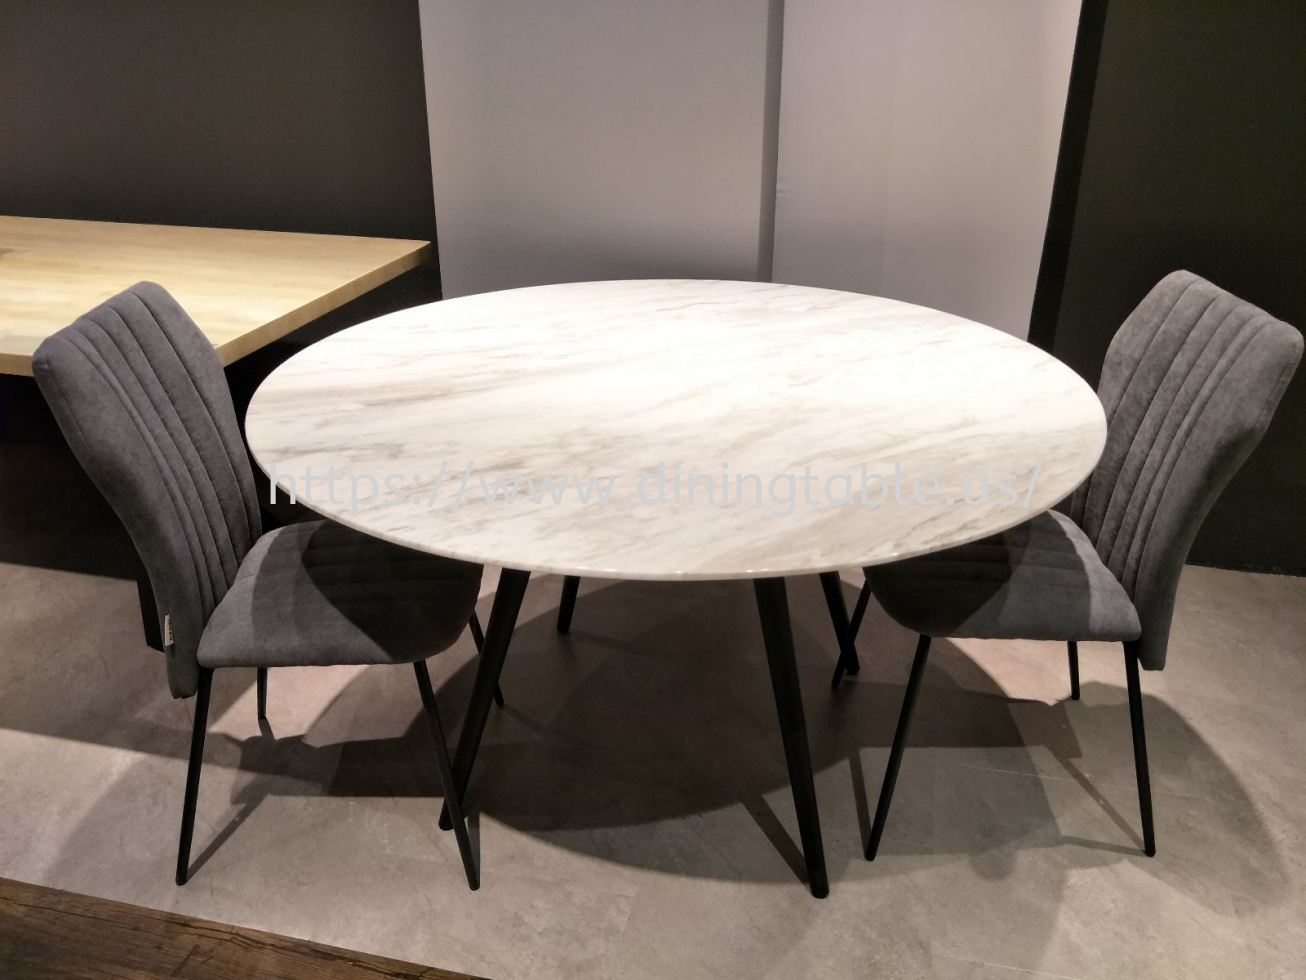 White Marble Dining Table 6 Seater - Stain Free Marble Top